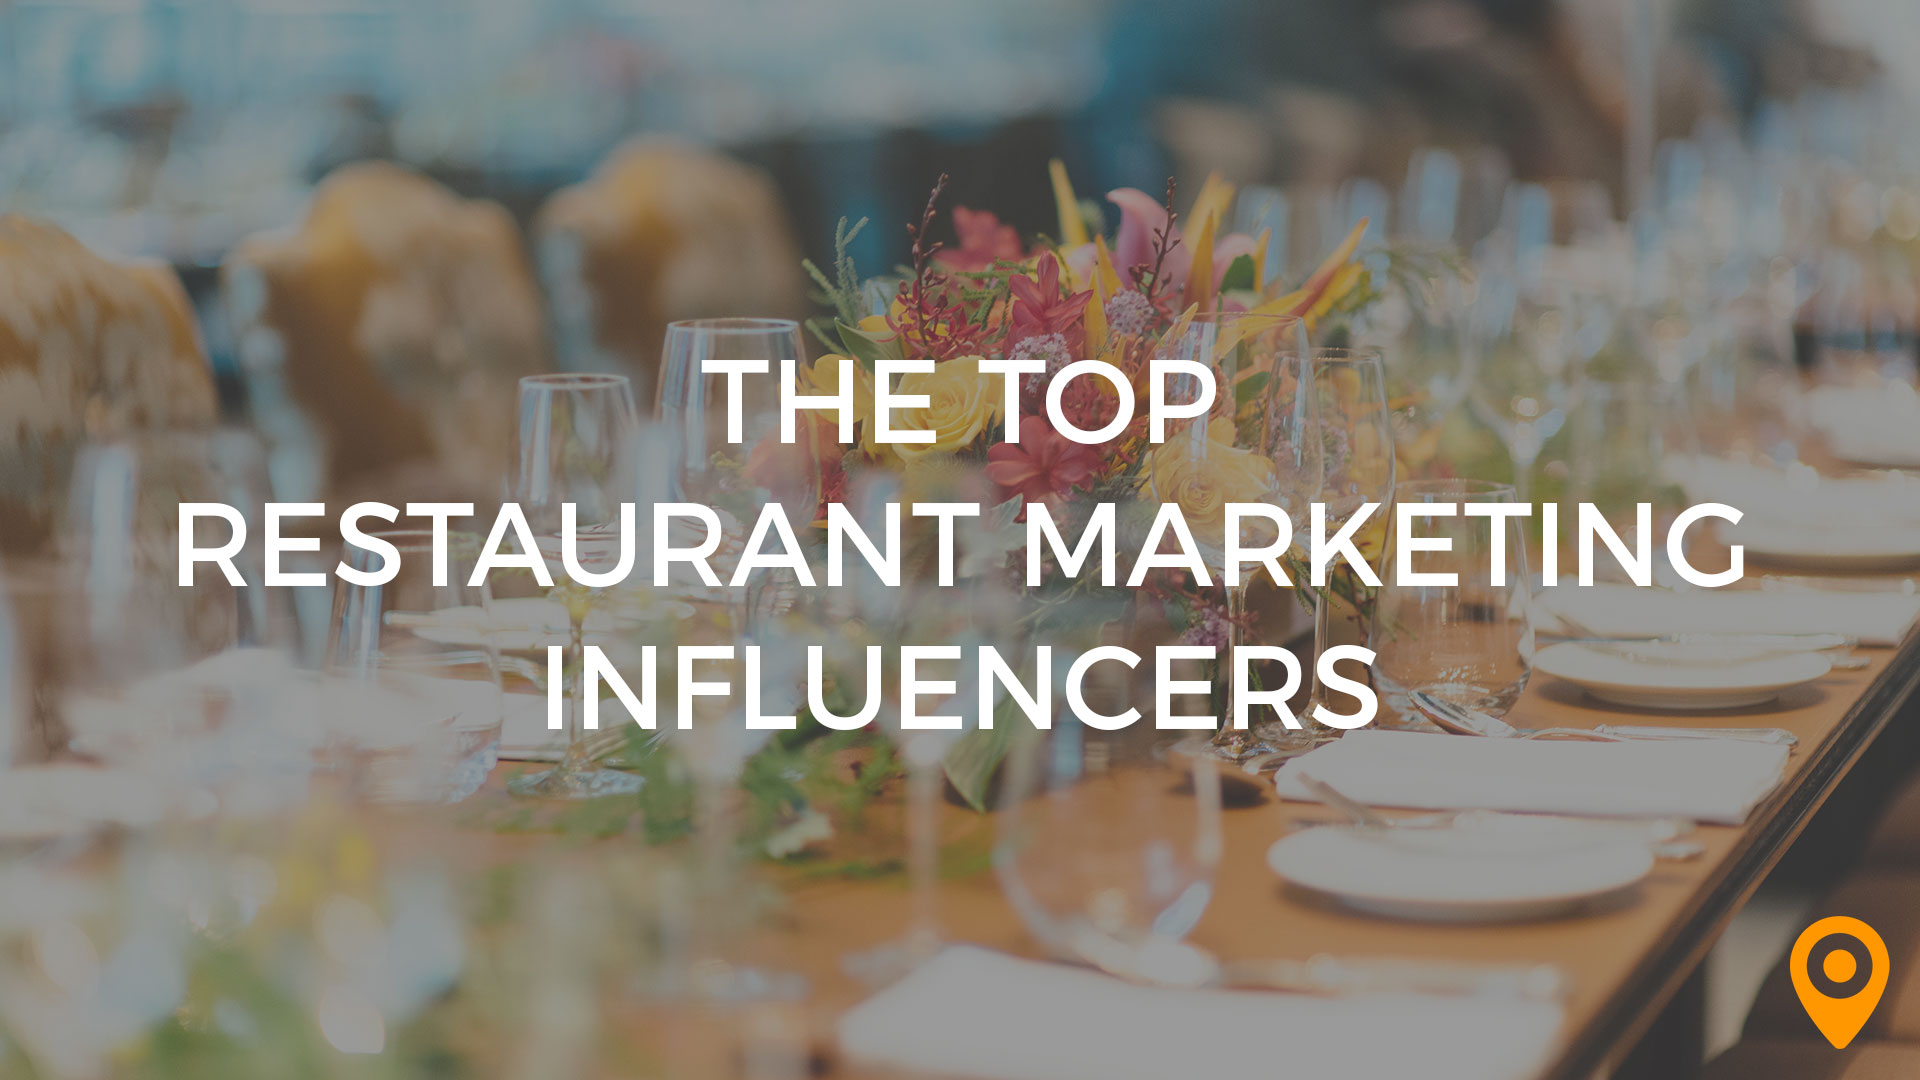 The Top Restaurant Marketing Influencers